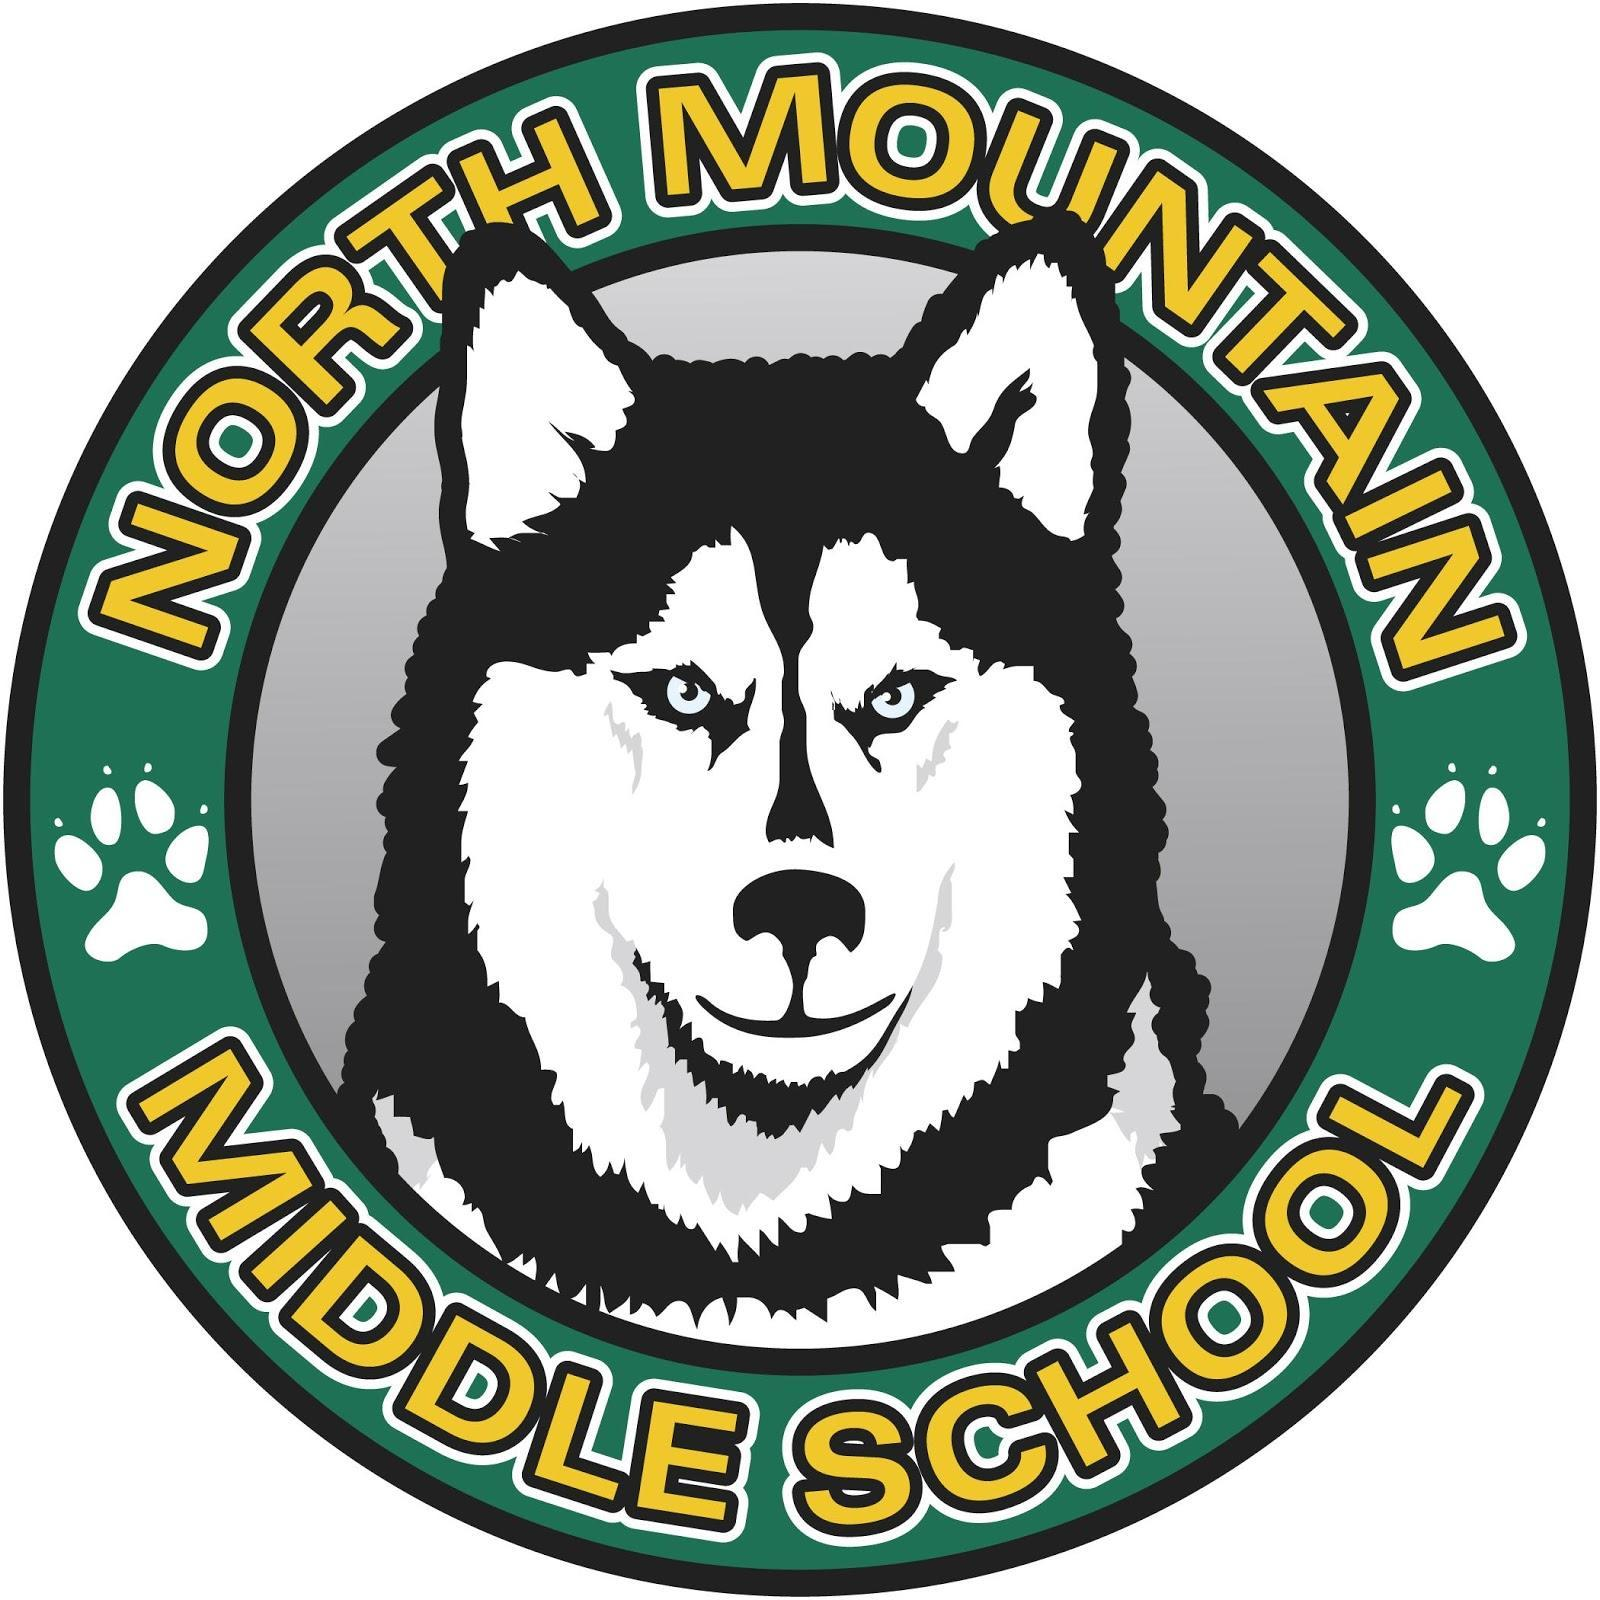 North Mountain Middle School